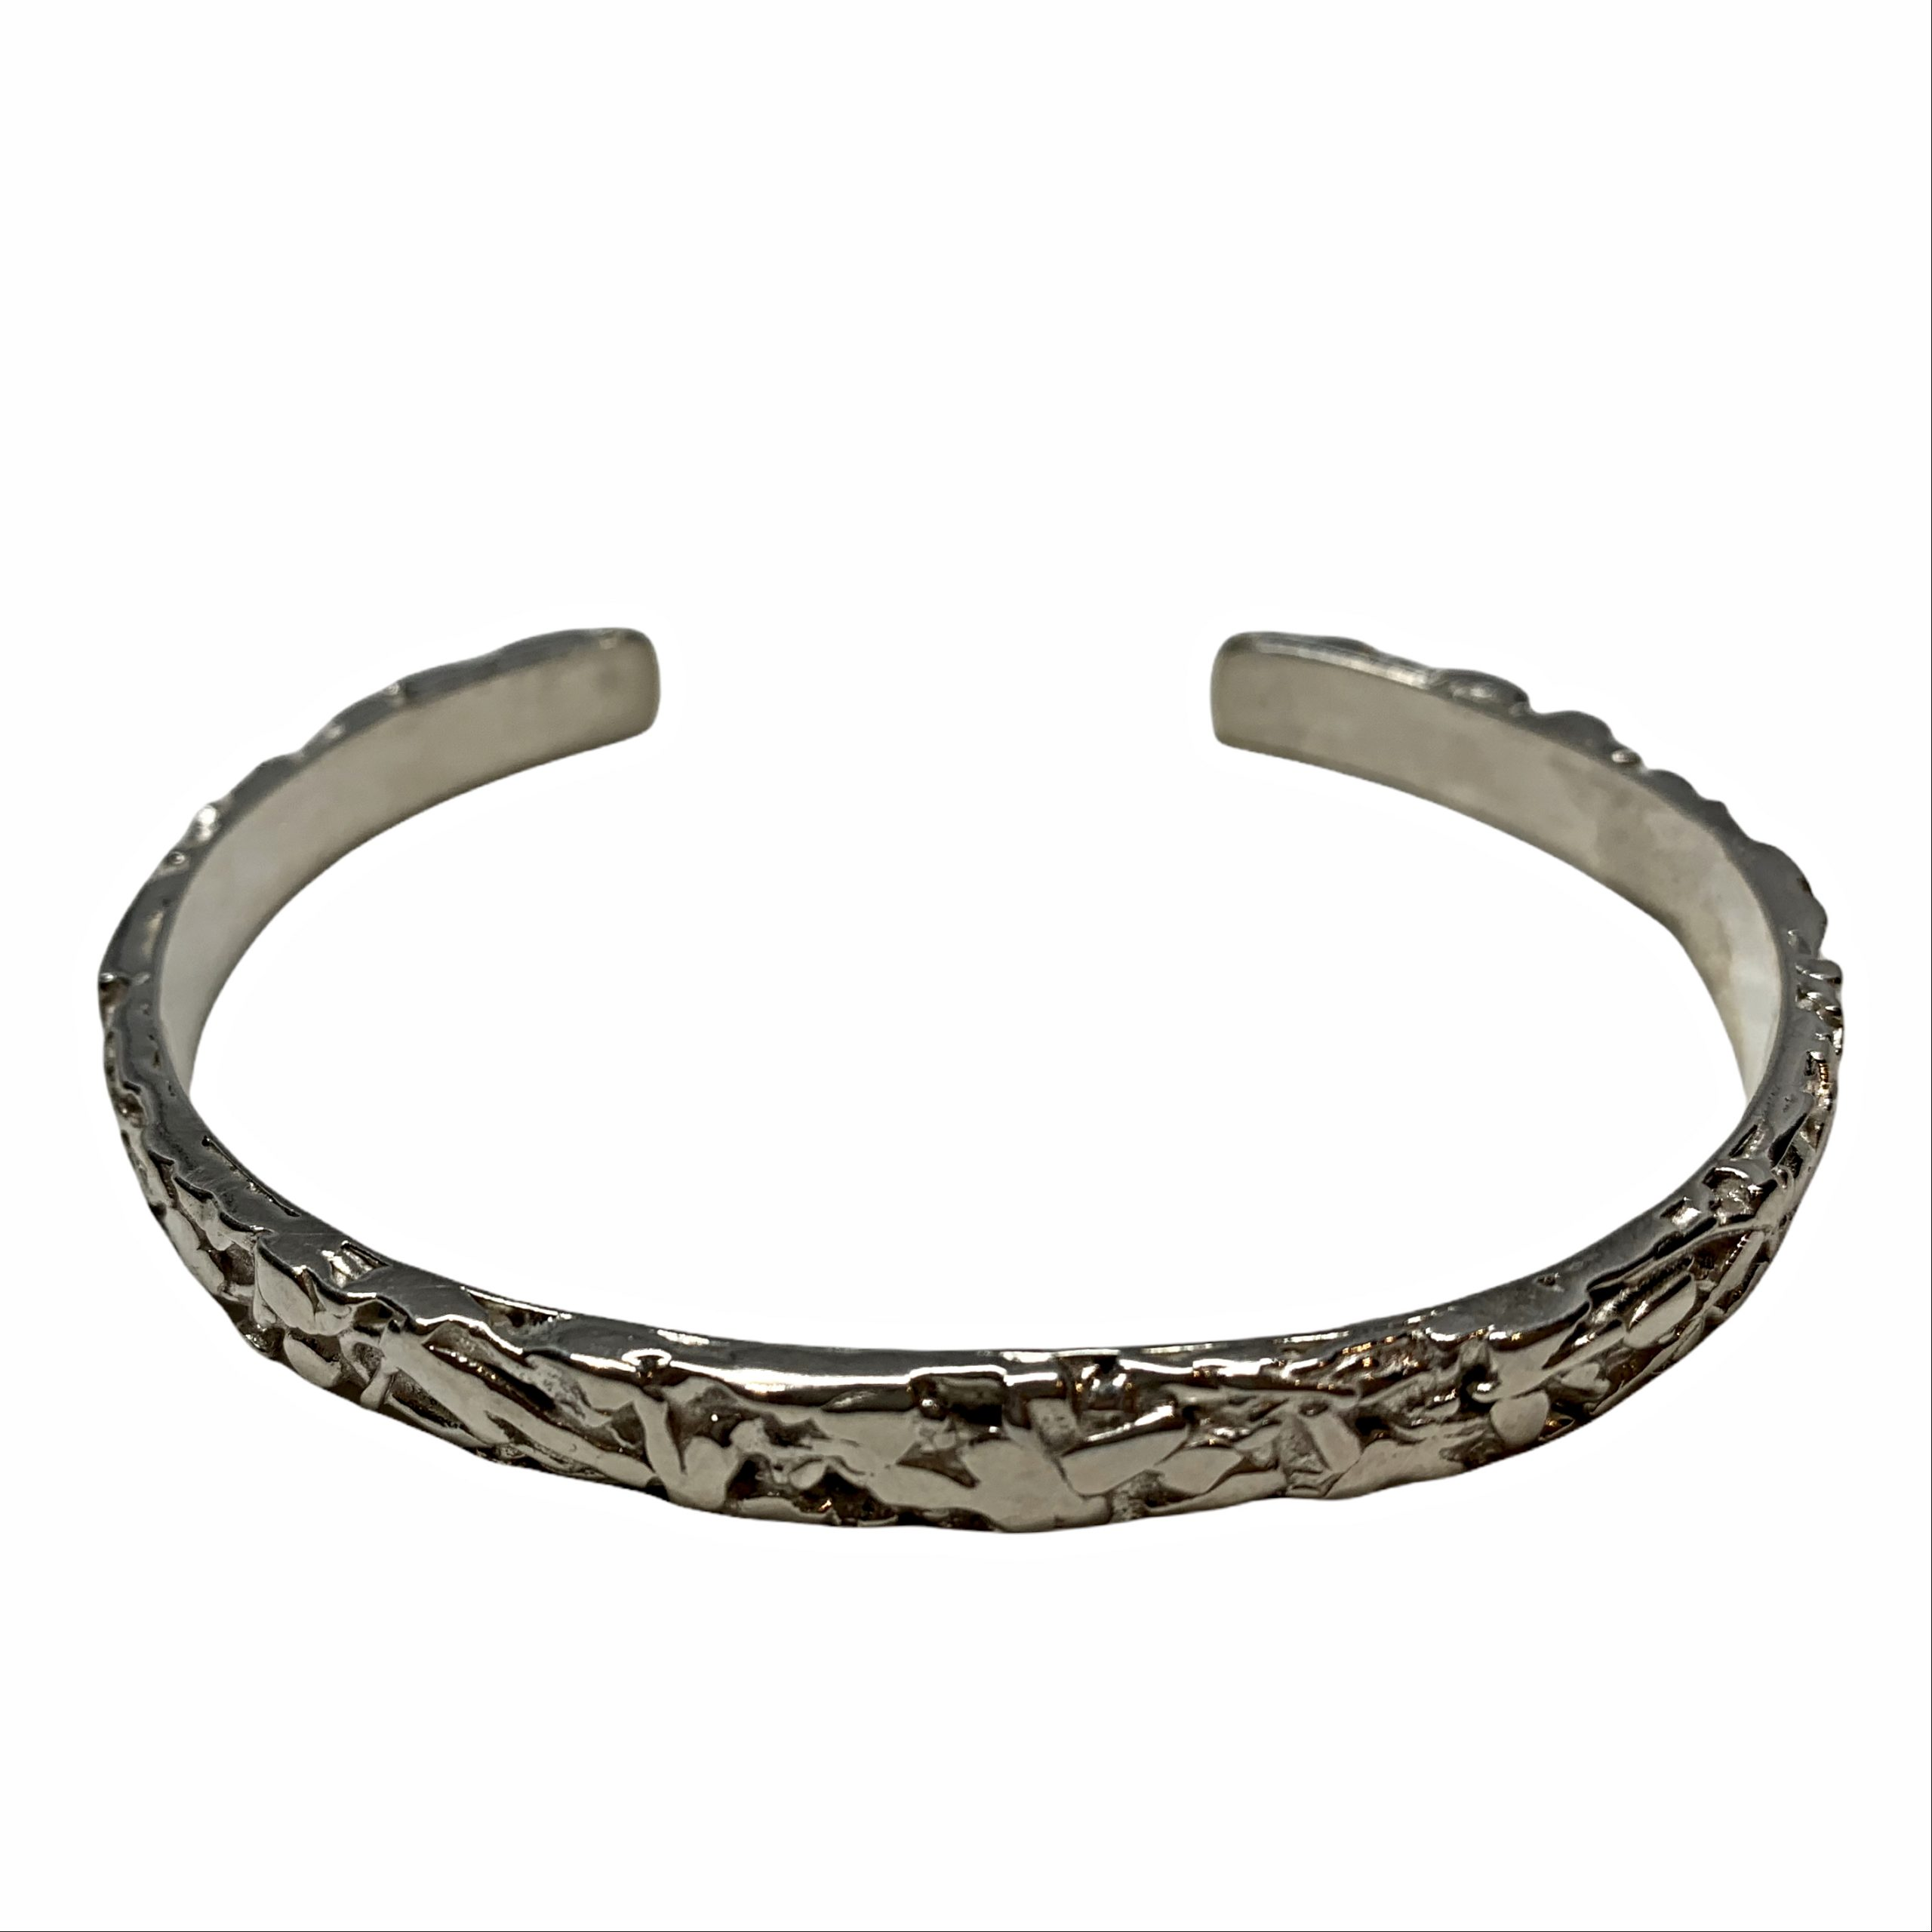 Handmade sterling silver bracelet by A&R Jewellery | Effusion Art Gallery + Cast Glass Studio, Invermere BC